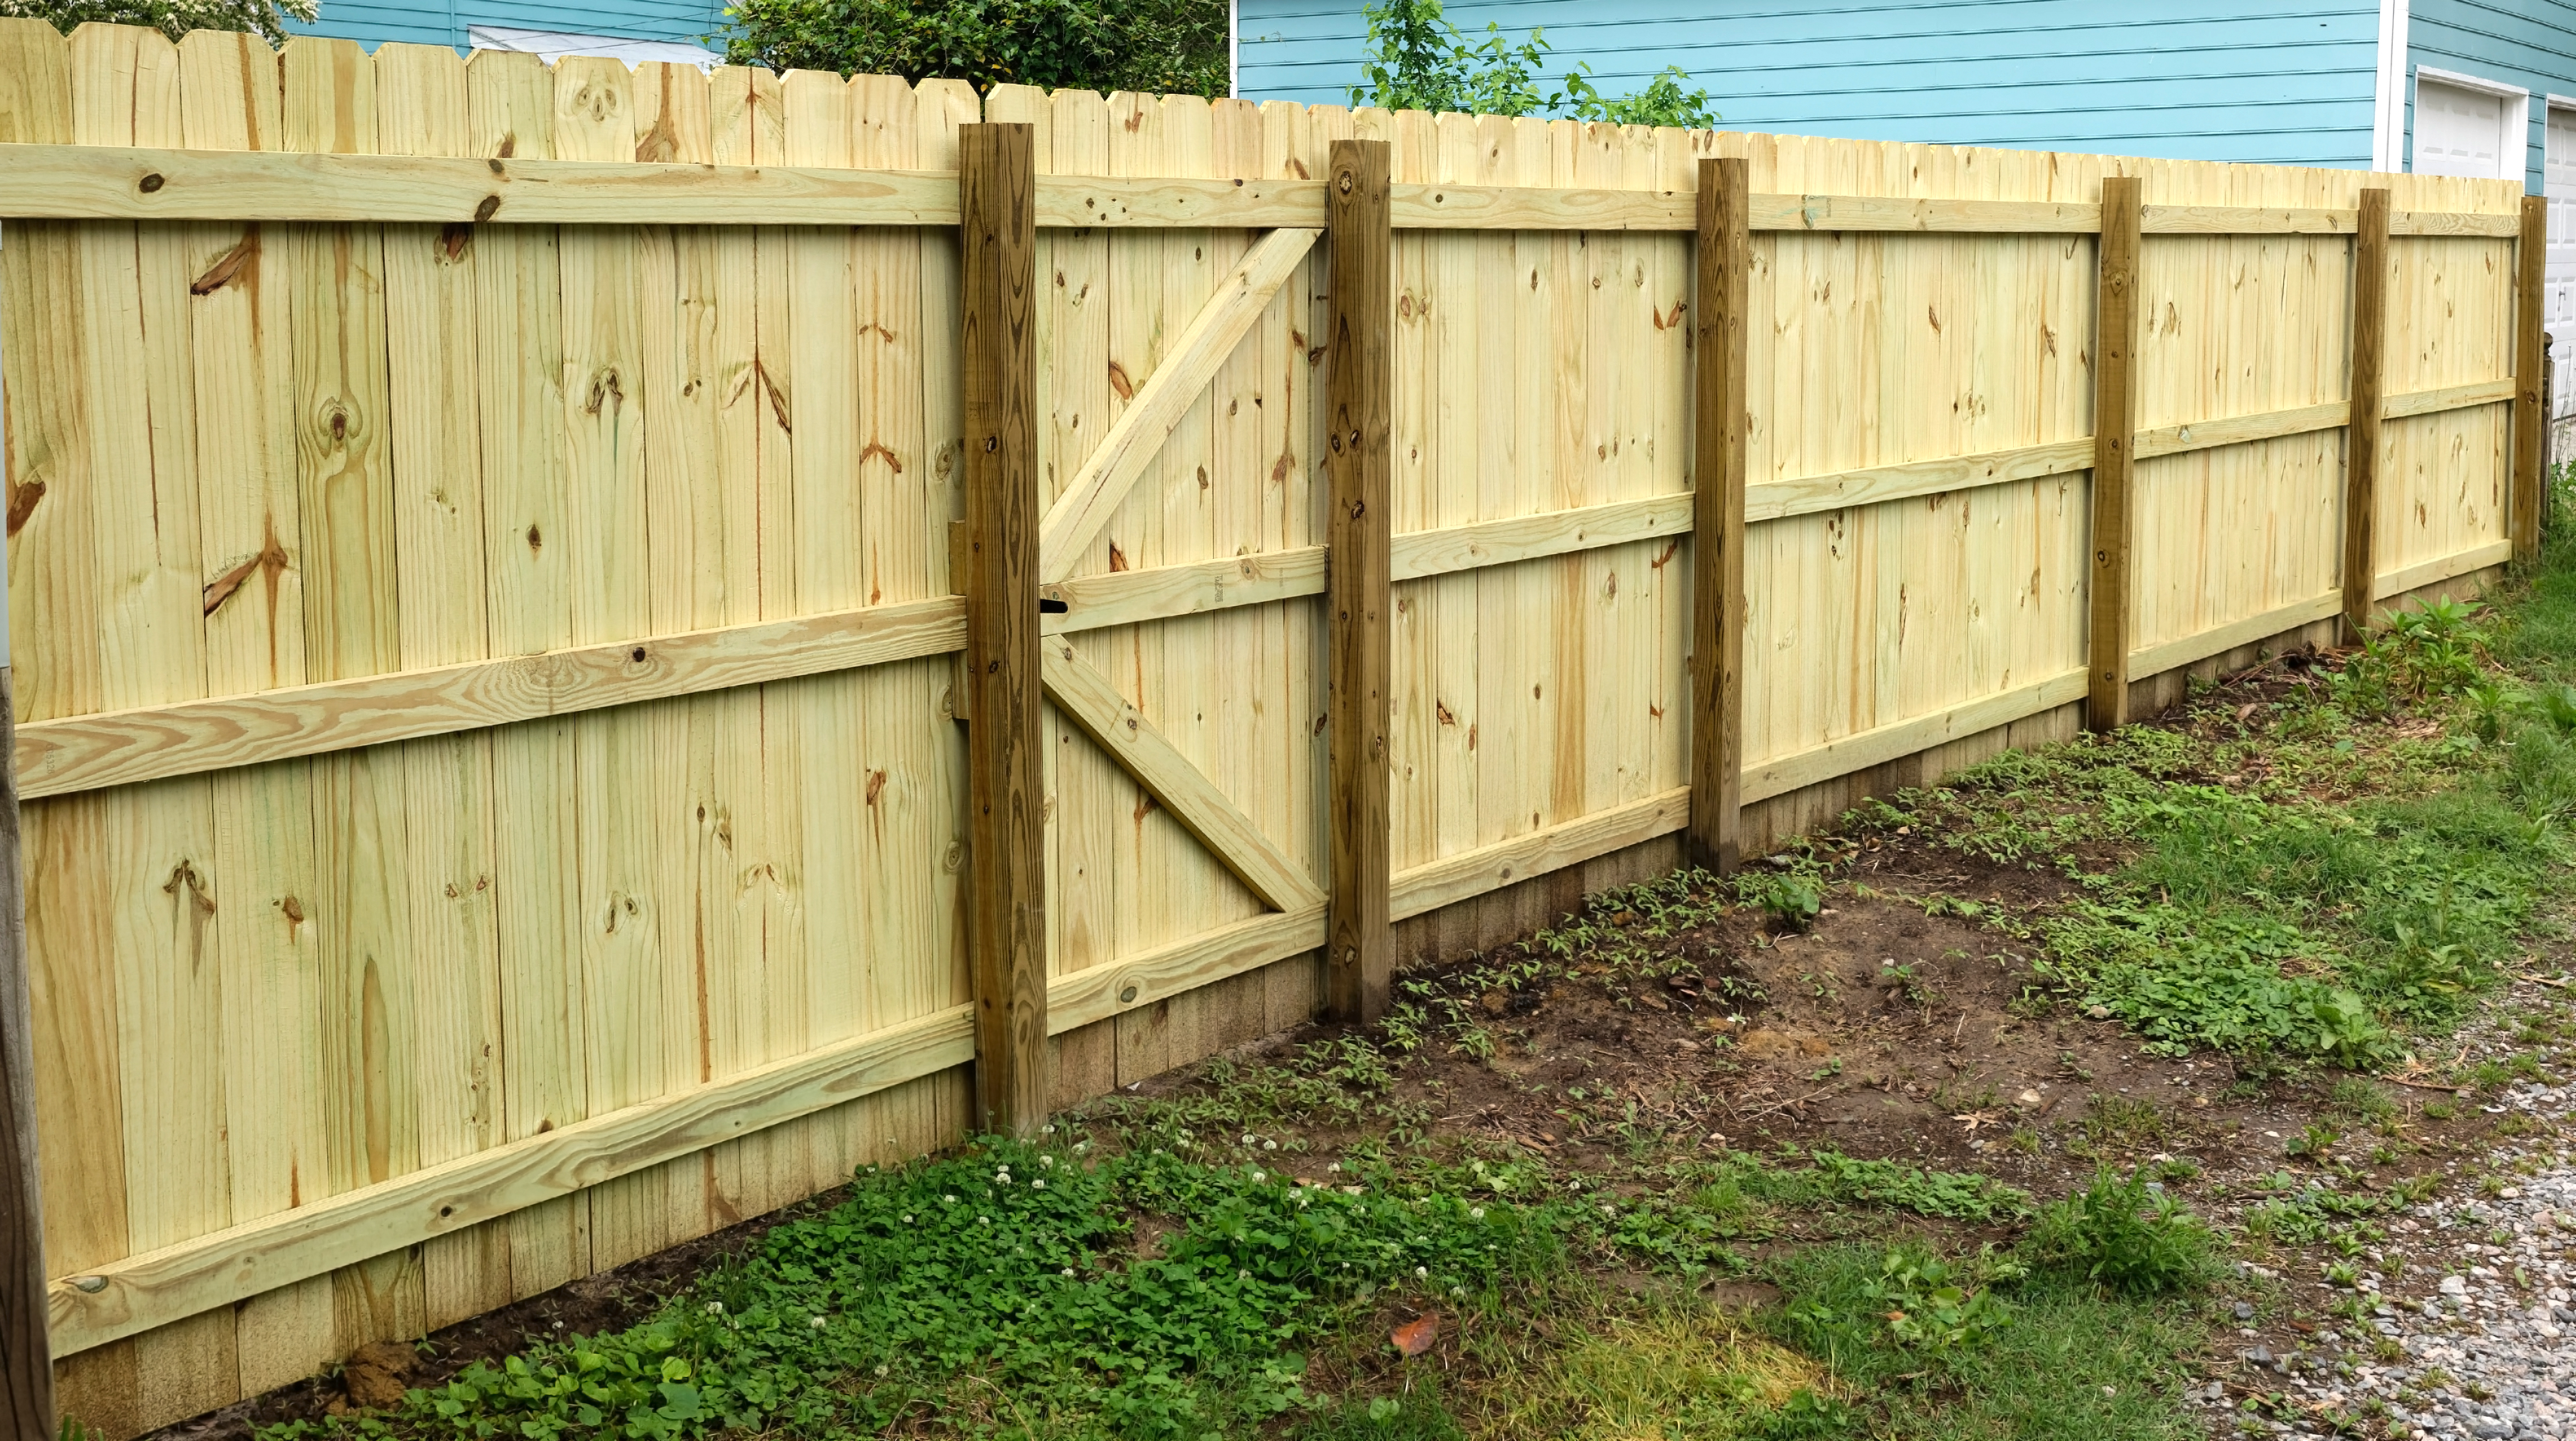 How to Fill in a Gap Under Fencing | Home Guides | SF Gate